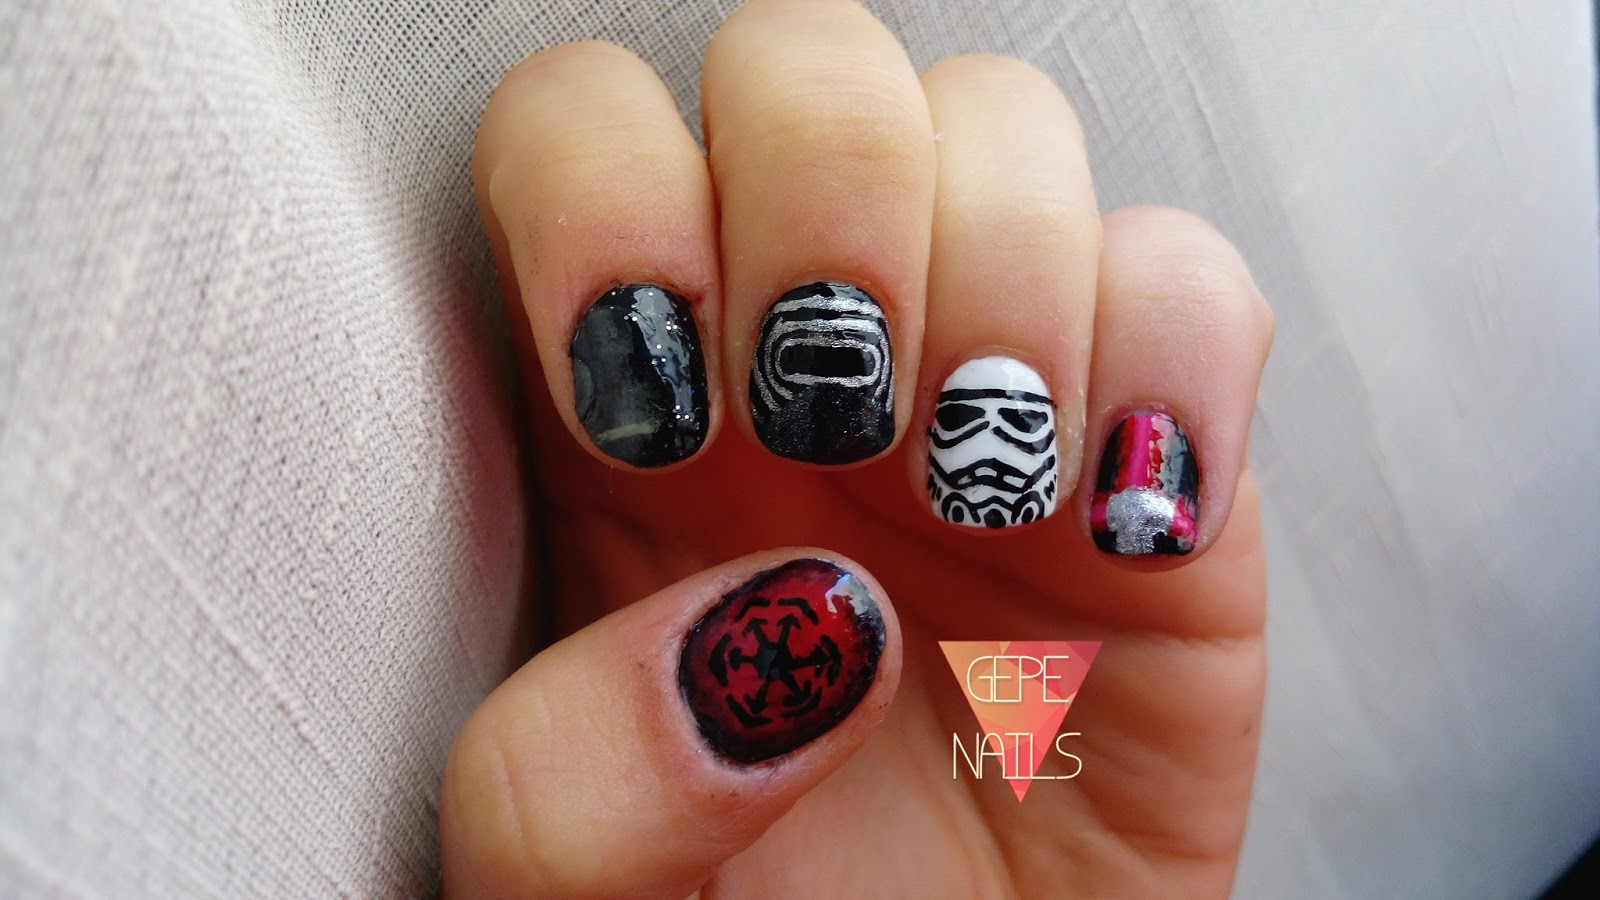 Gepe-nails: May the force be with you. #STARWARS